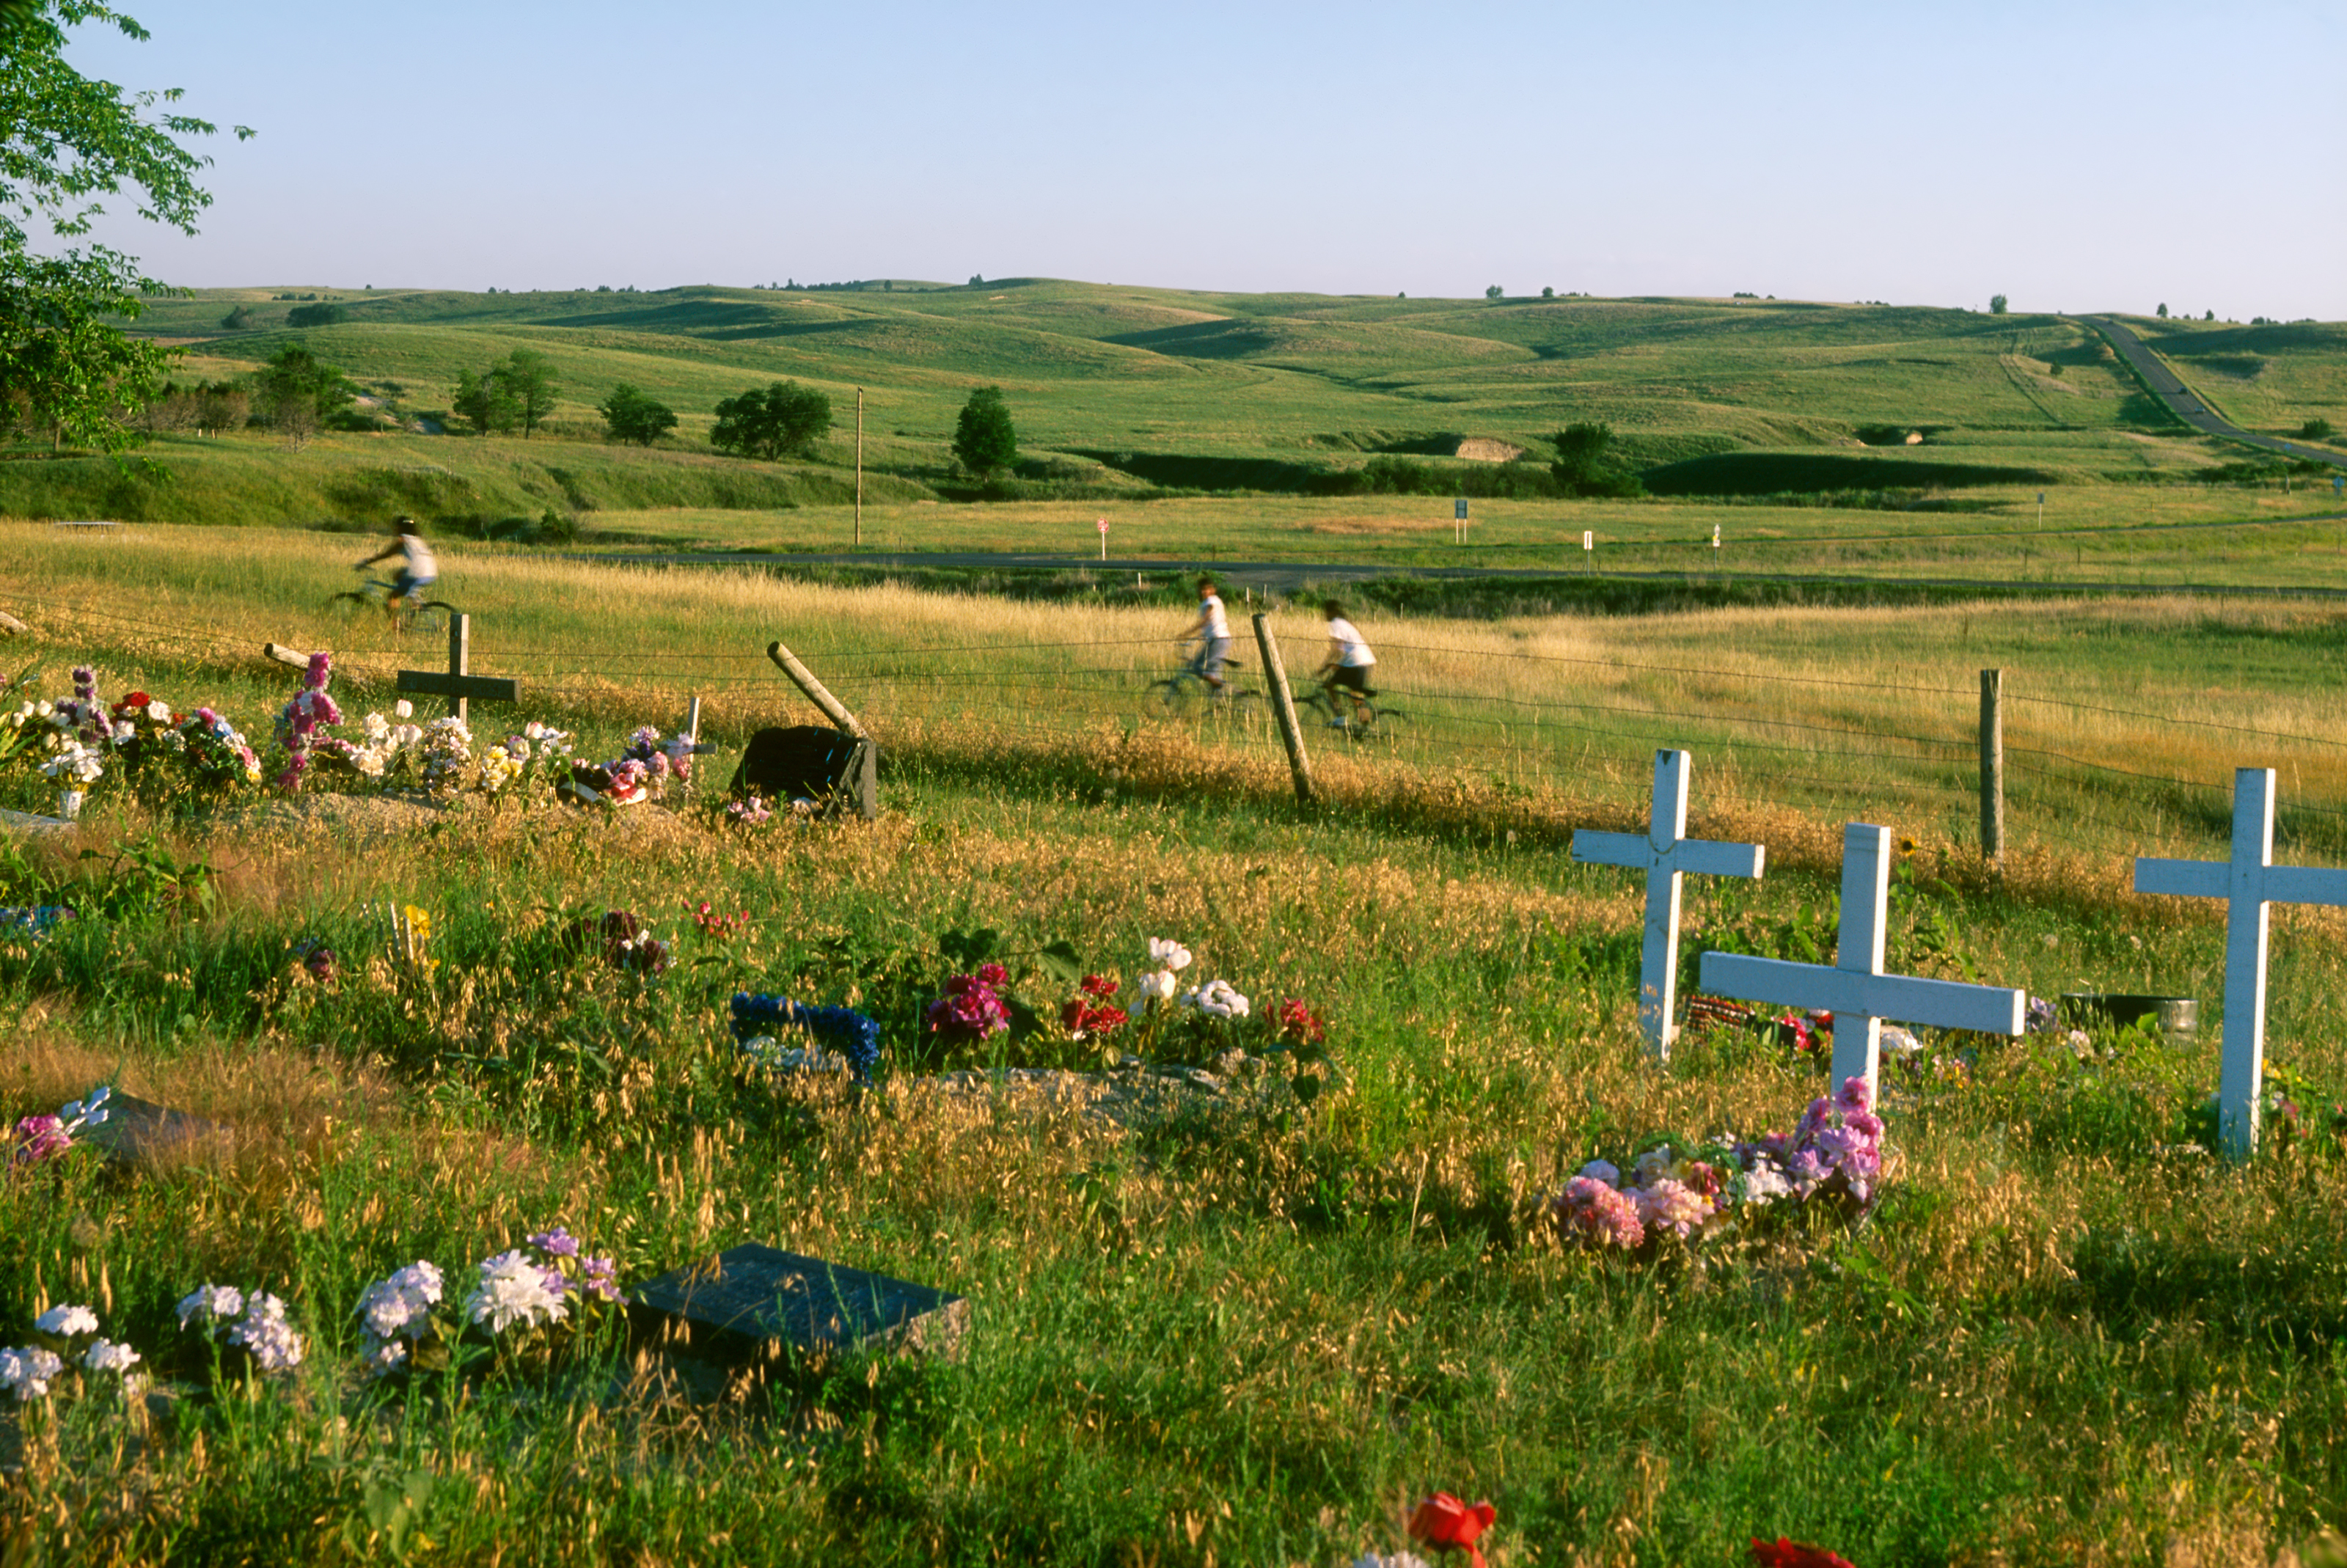 Native American children playing around the cemetery of Wounded Knee, site of the Dec. 29, 1890 historic massacre of a Sioux tribe in South Dakota.